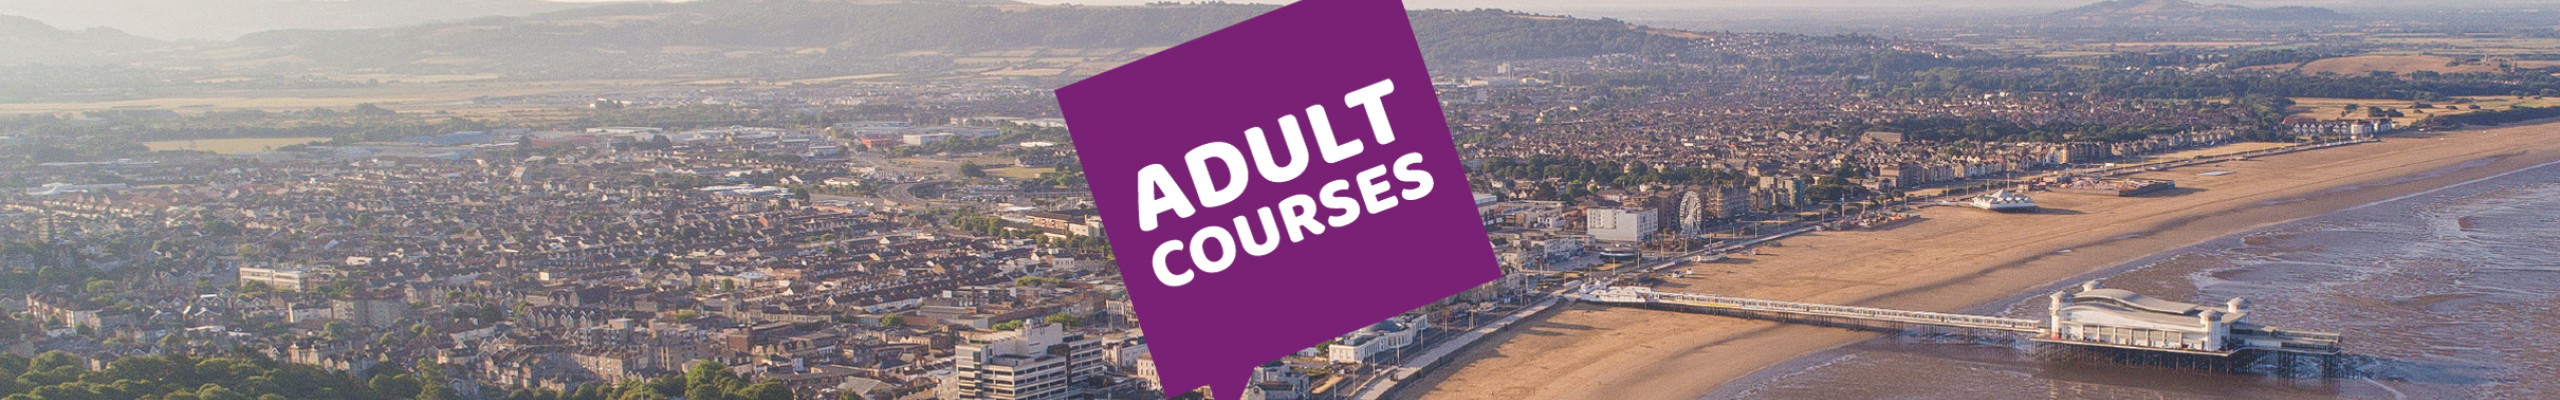 Weston College Adult Courses